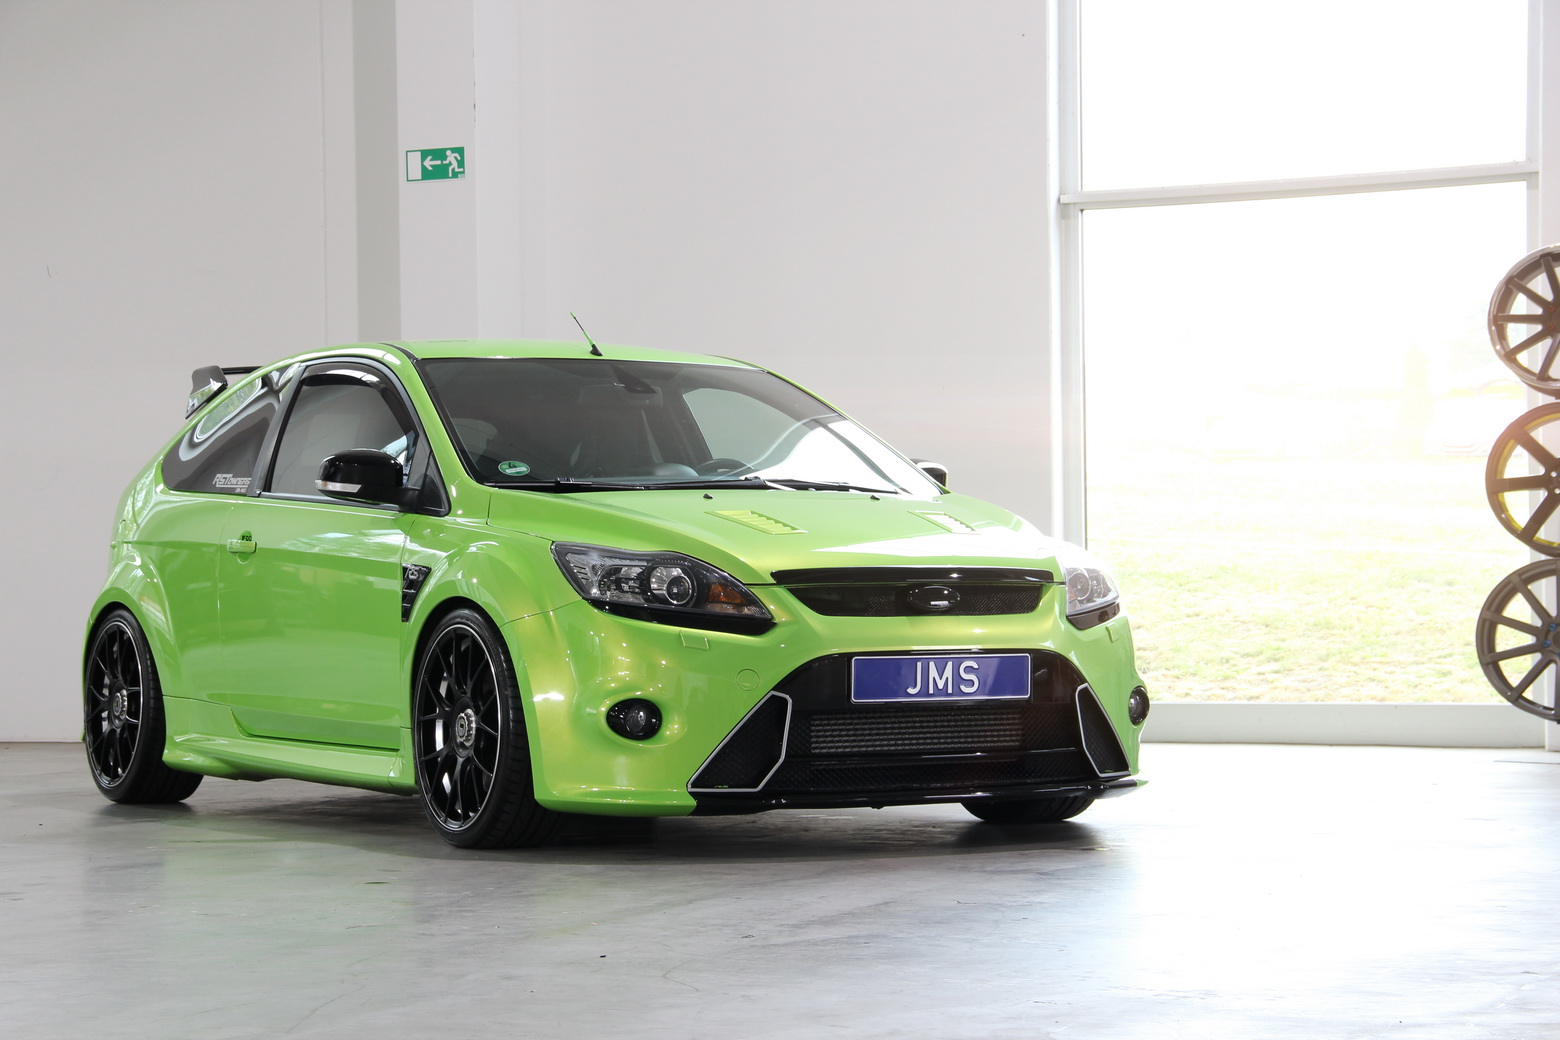 Ford_Focus_RS_JMS_0001